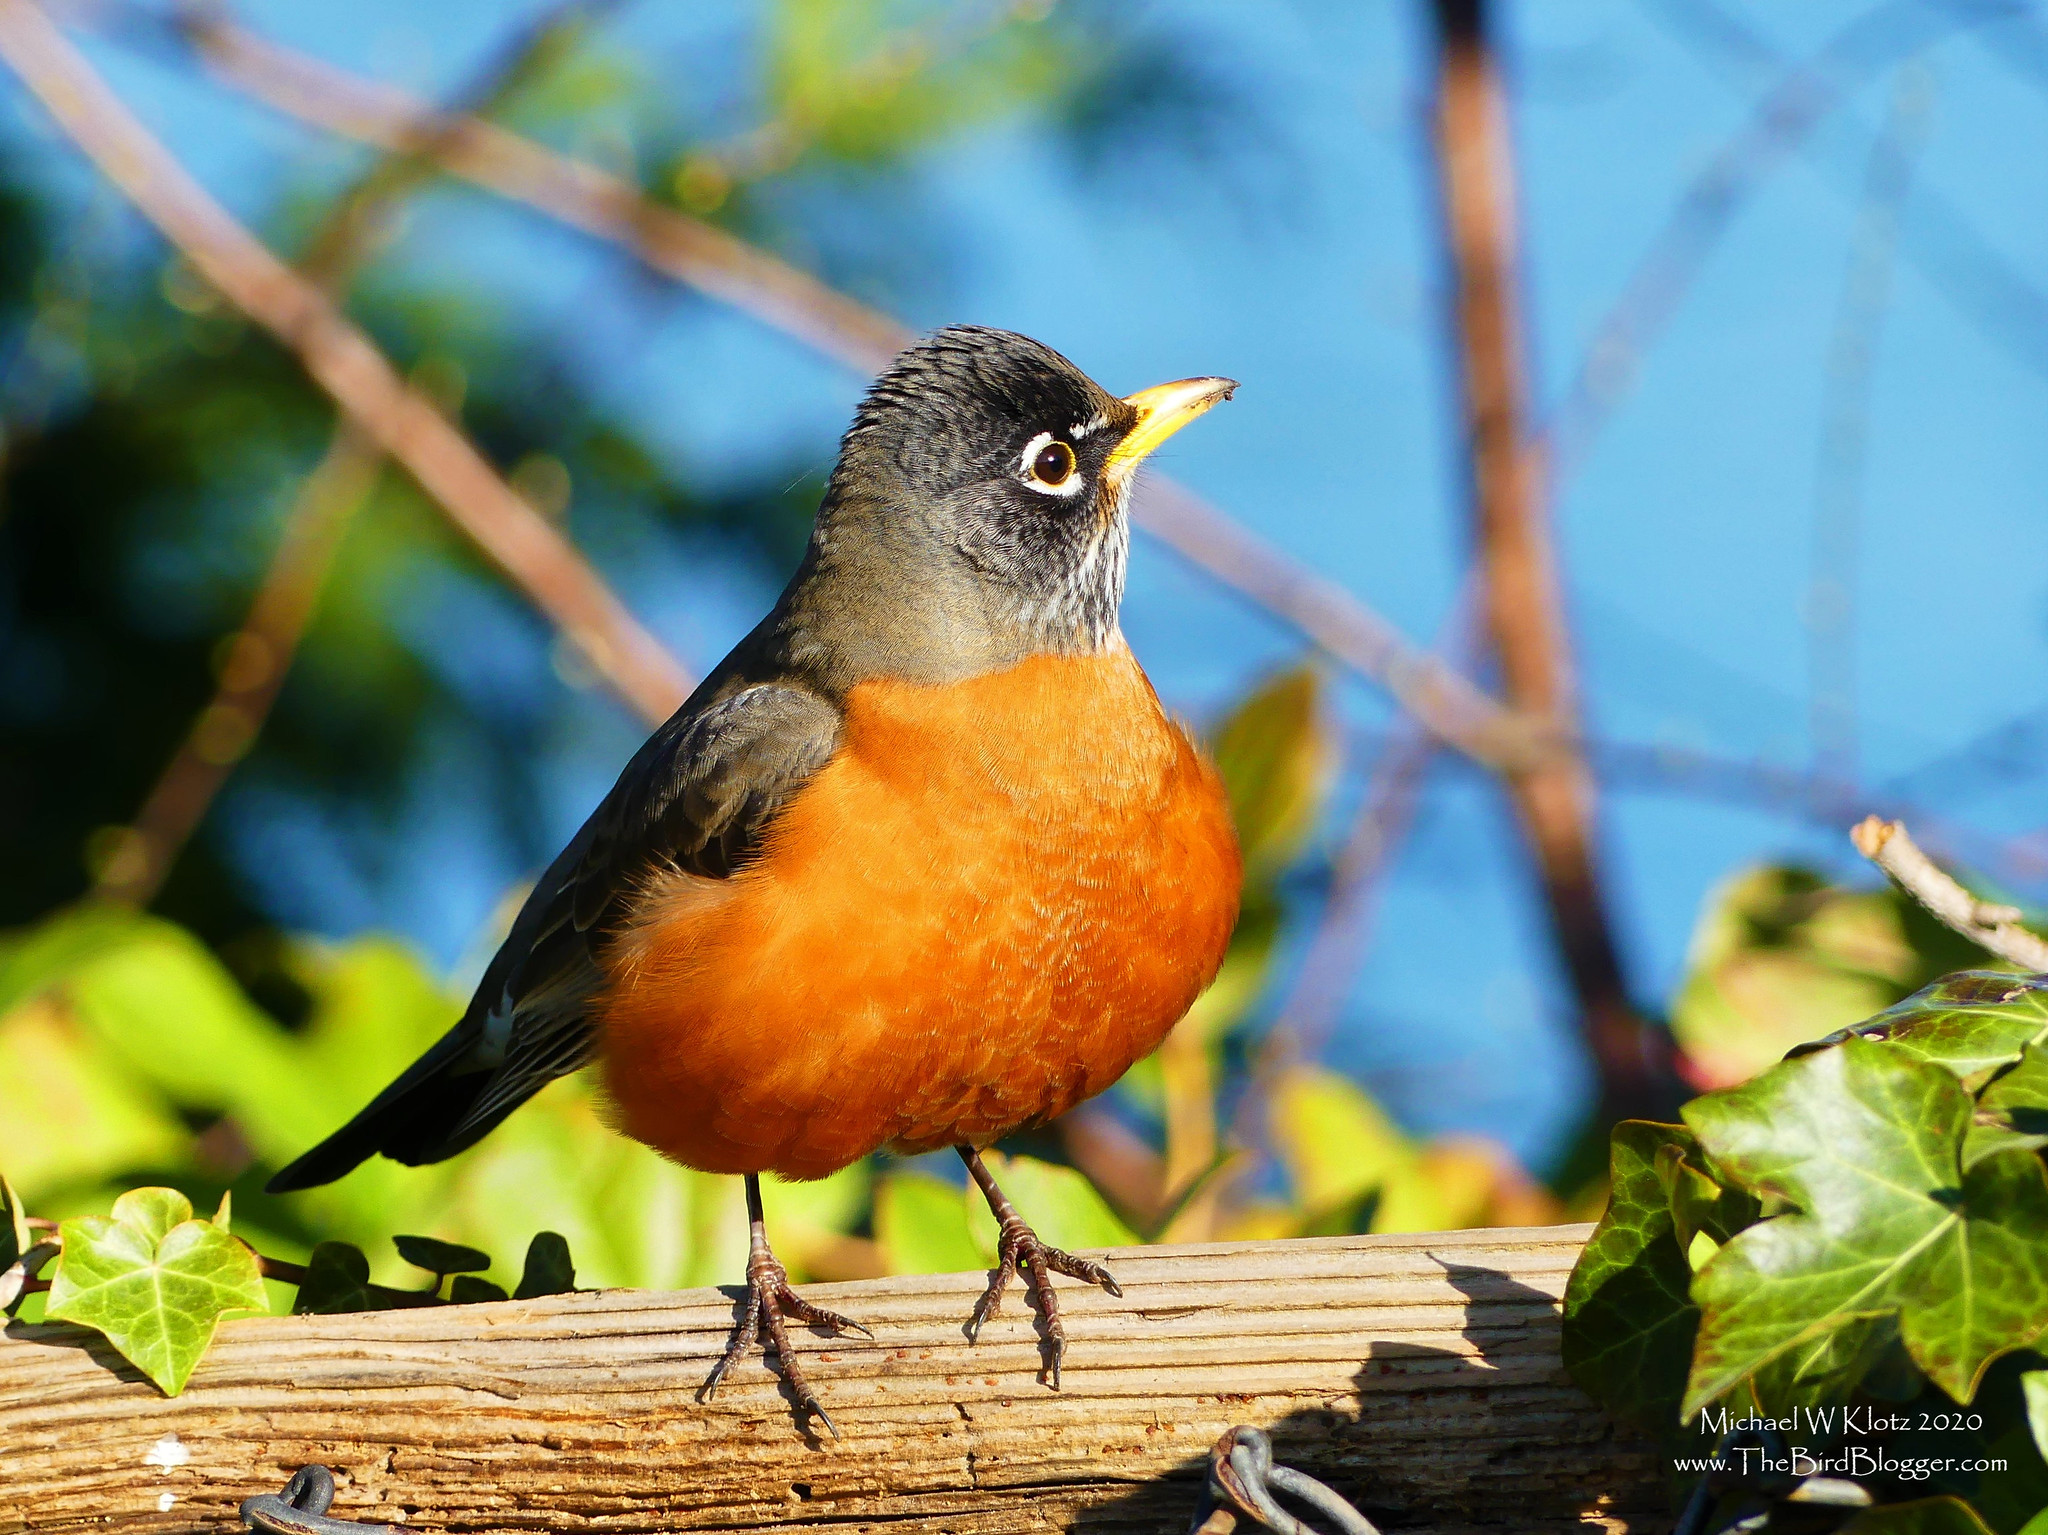 Offer robins what they need and they'll stick around